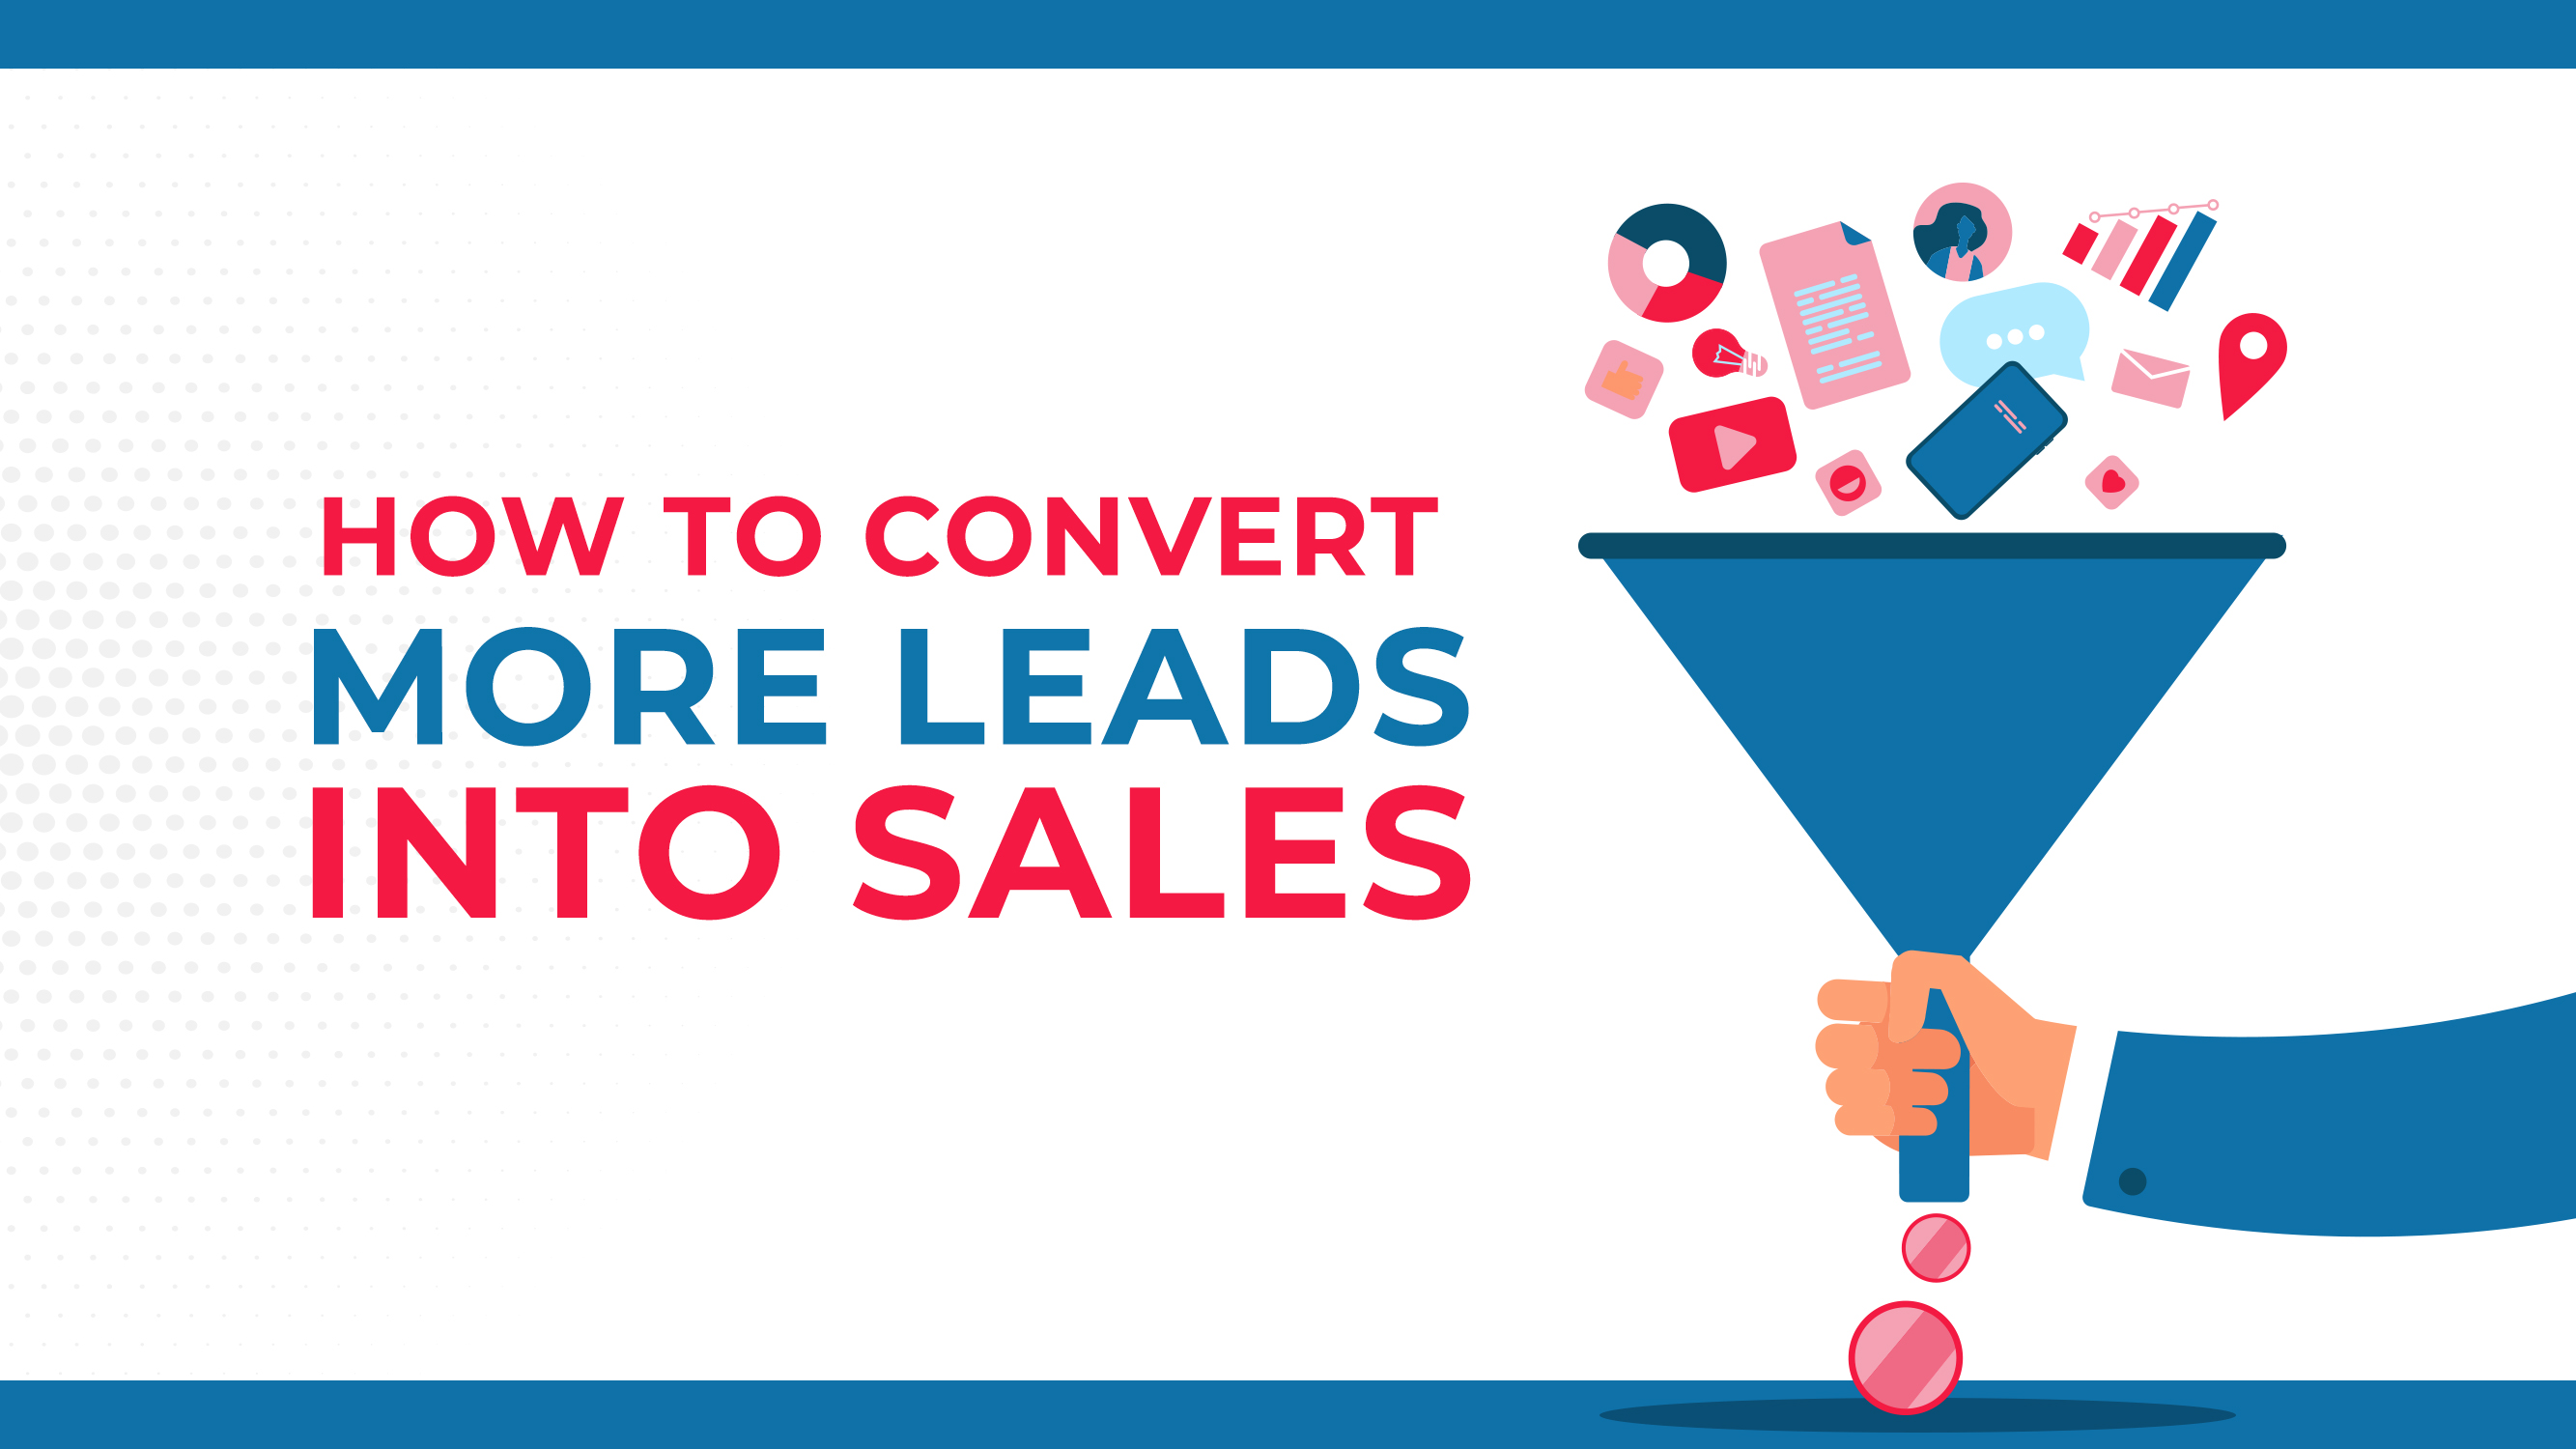 How To Convert More Leads Into Sales